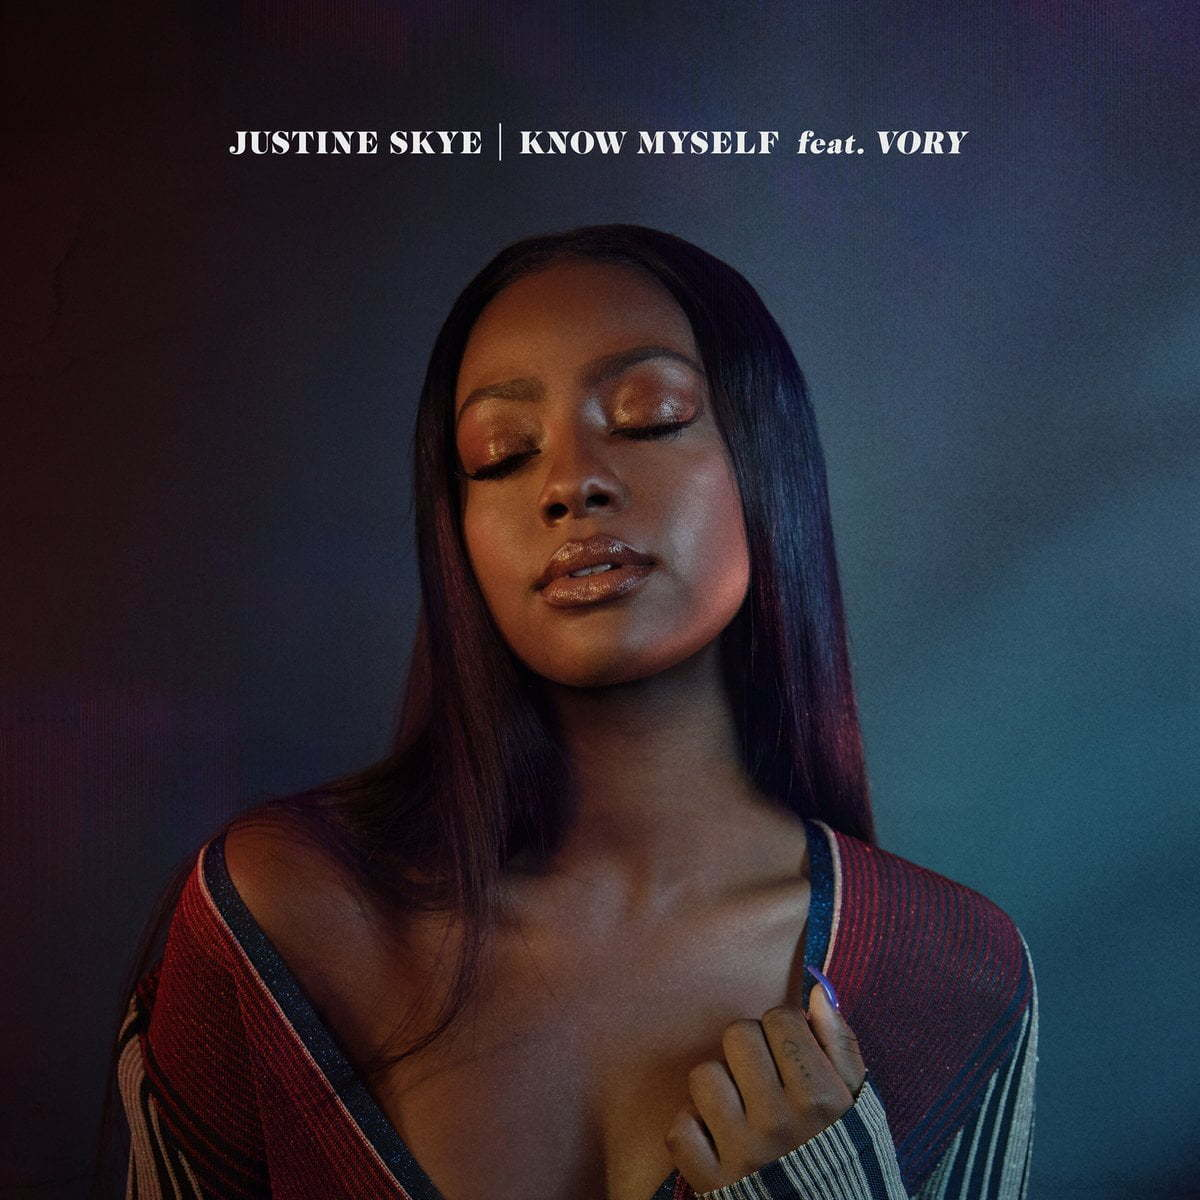 Justine Skye Feat Vory  Know Myself Lyrics  Urban Islandz